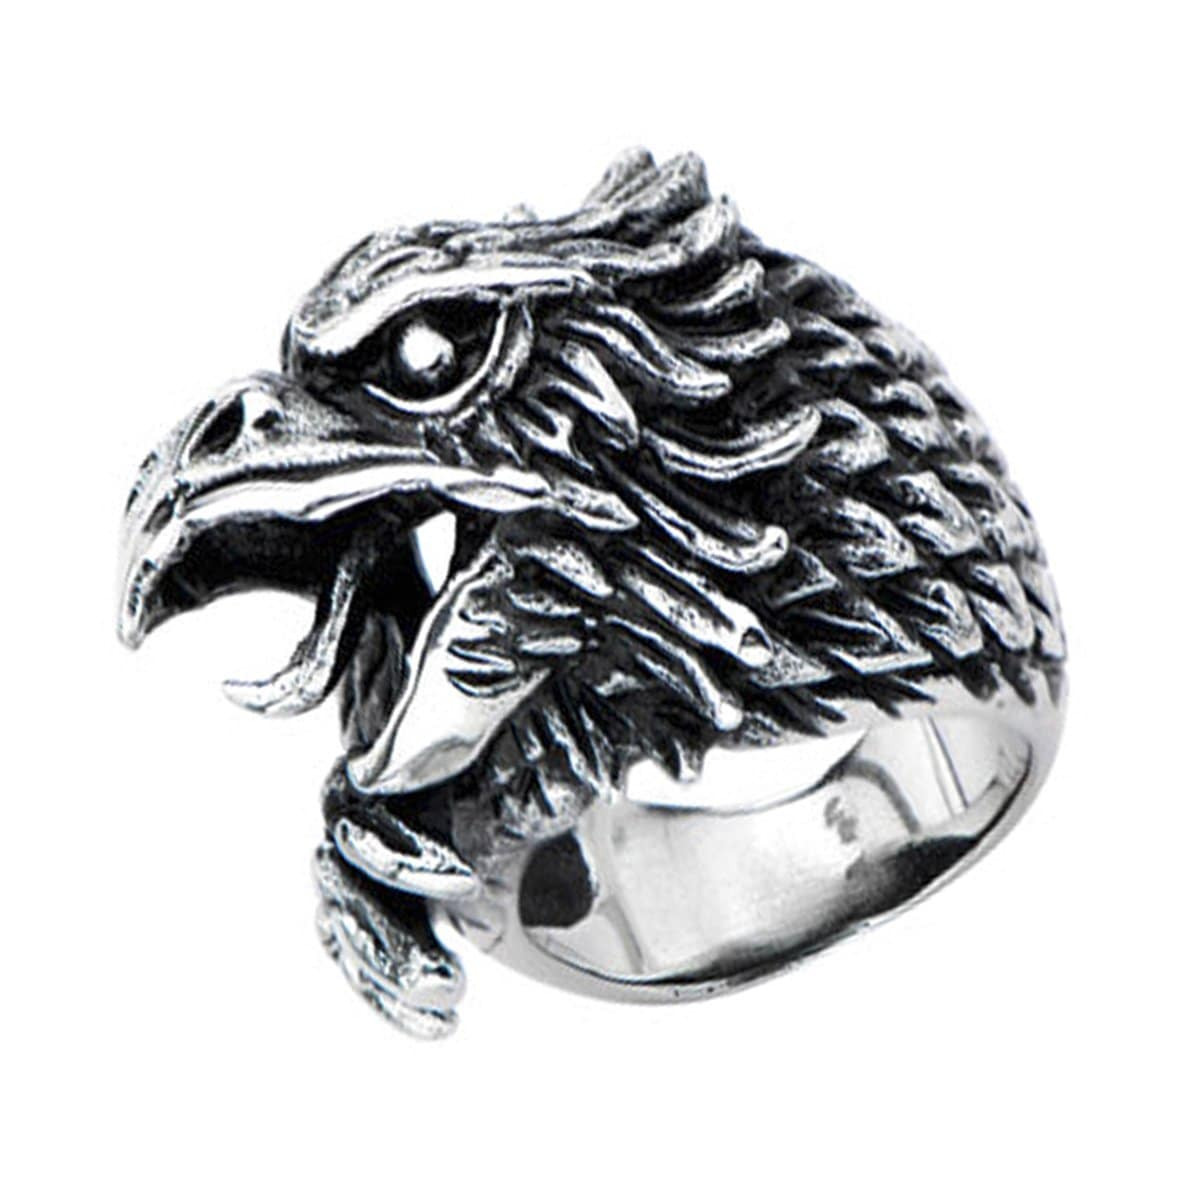 Darkened Silver Stainless Steel Eagle Profile Ring - Inox Jewelry India